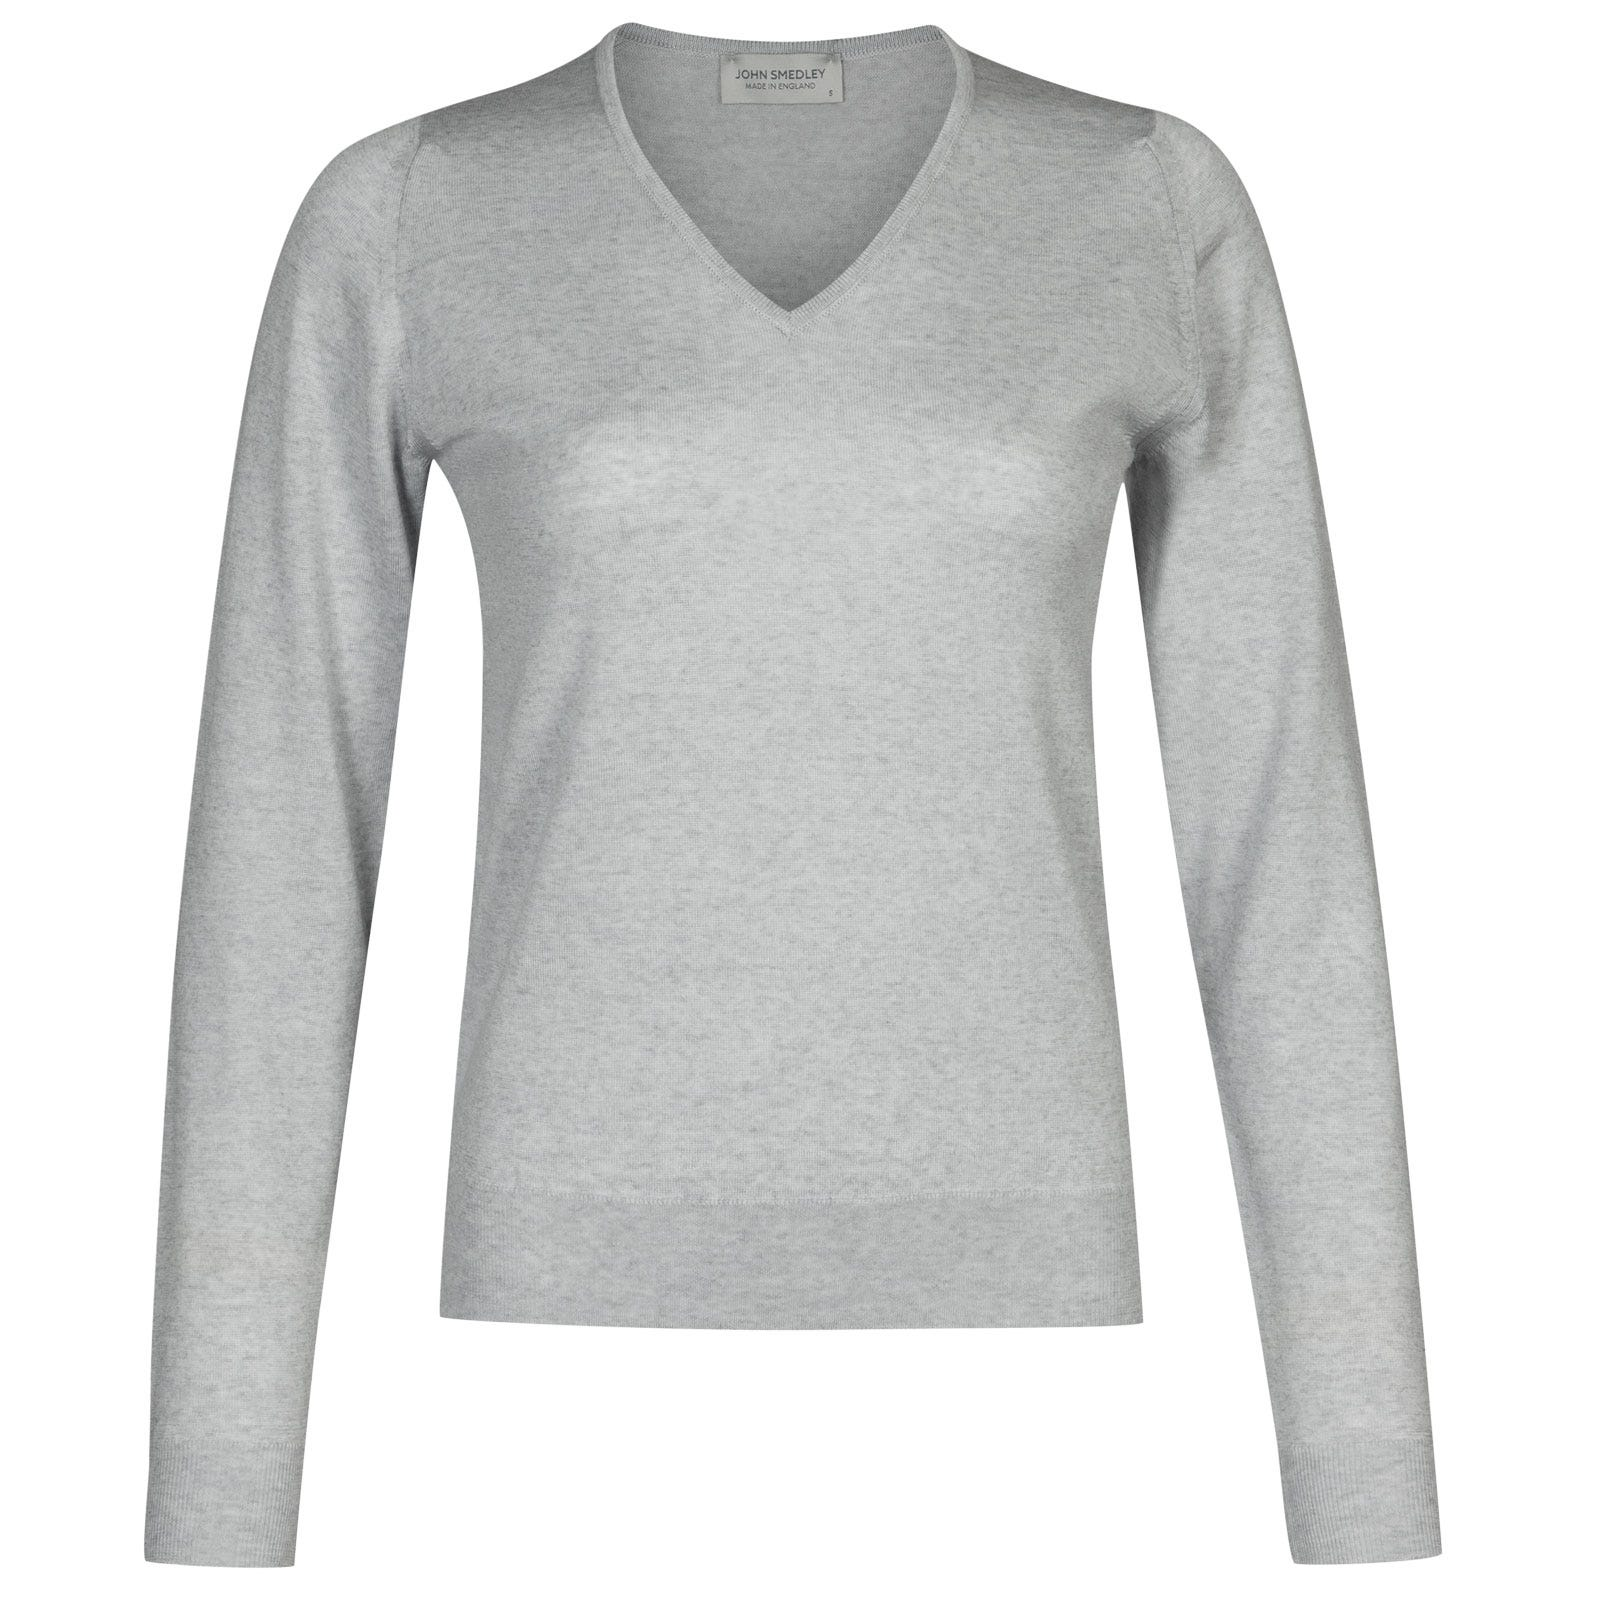 John Smedley manarola Merino Wool Sweater in Bardot Grey-M